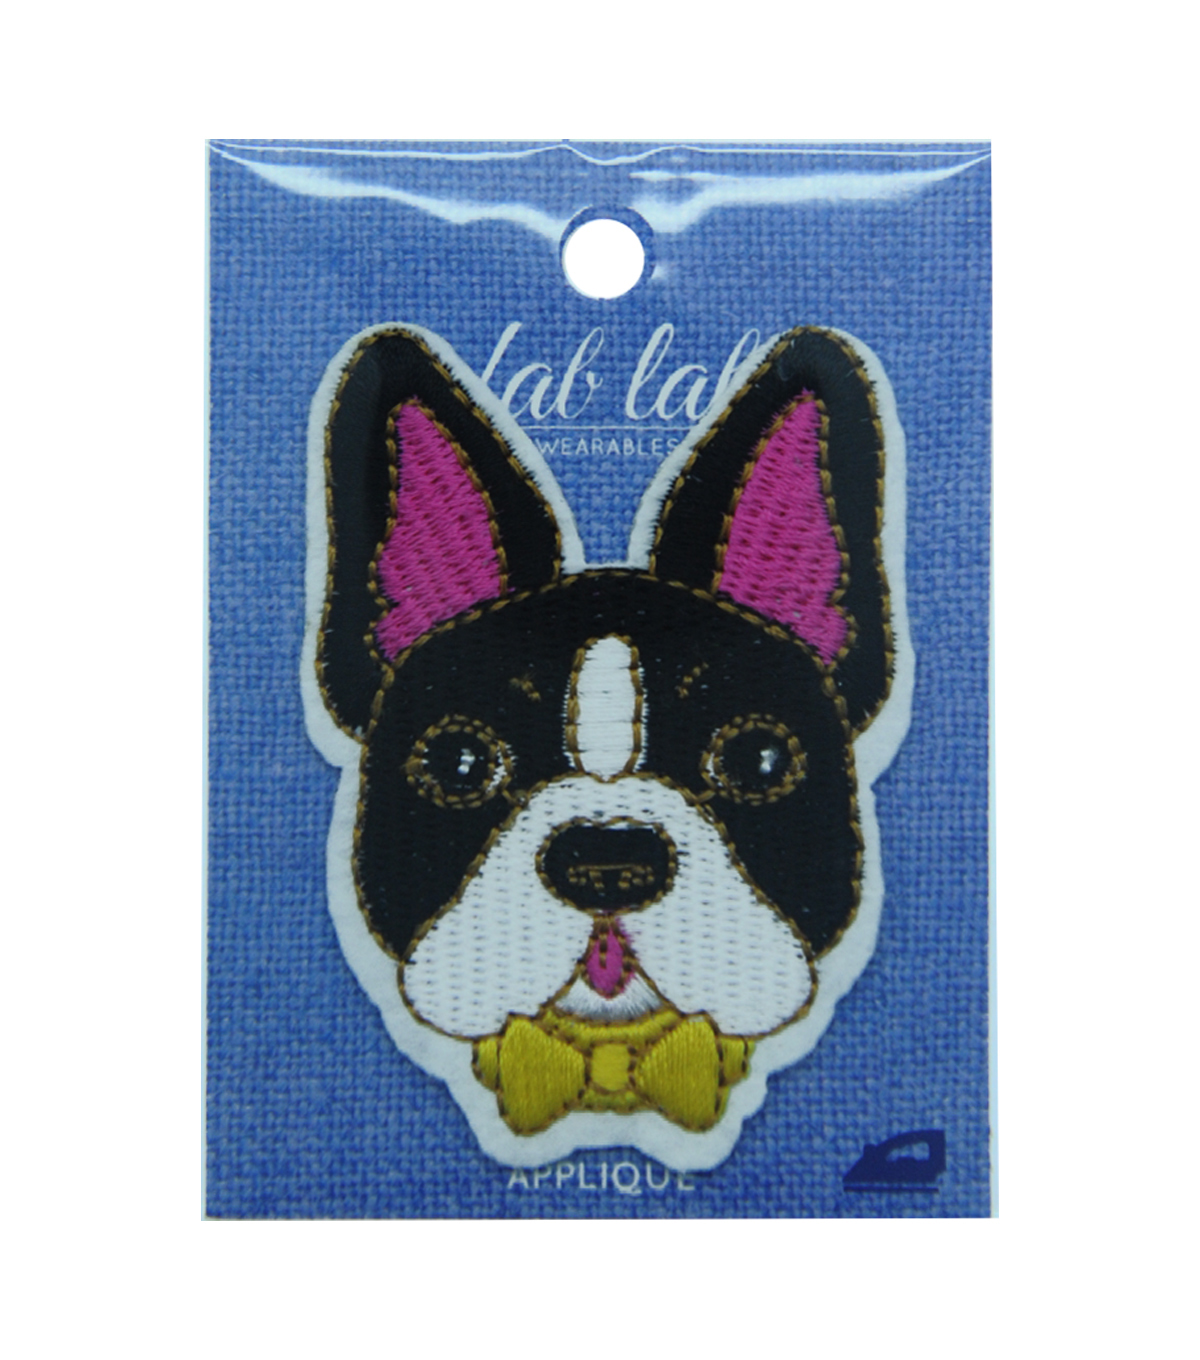 Fab Lab Wearables Embroidery Dog Iron-on Applique